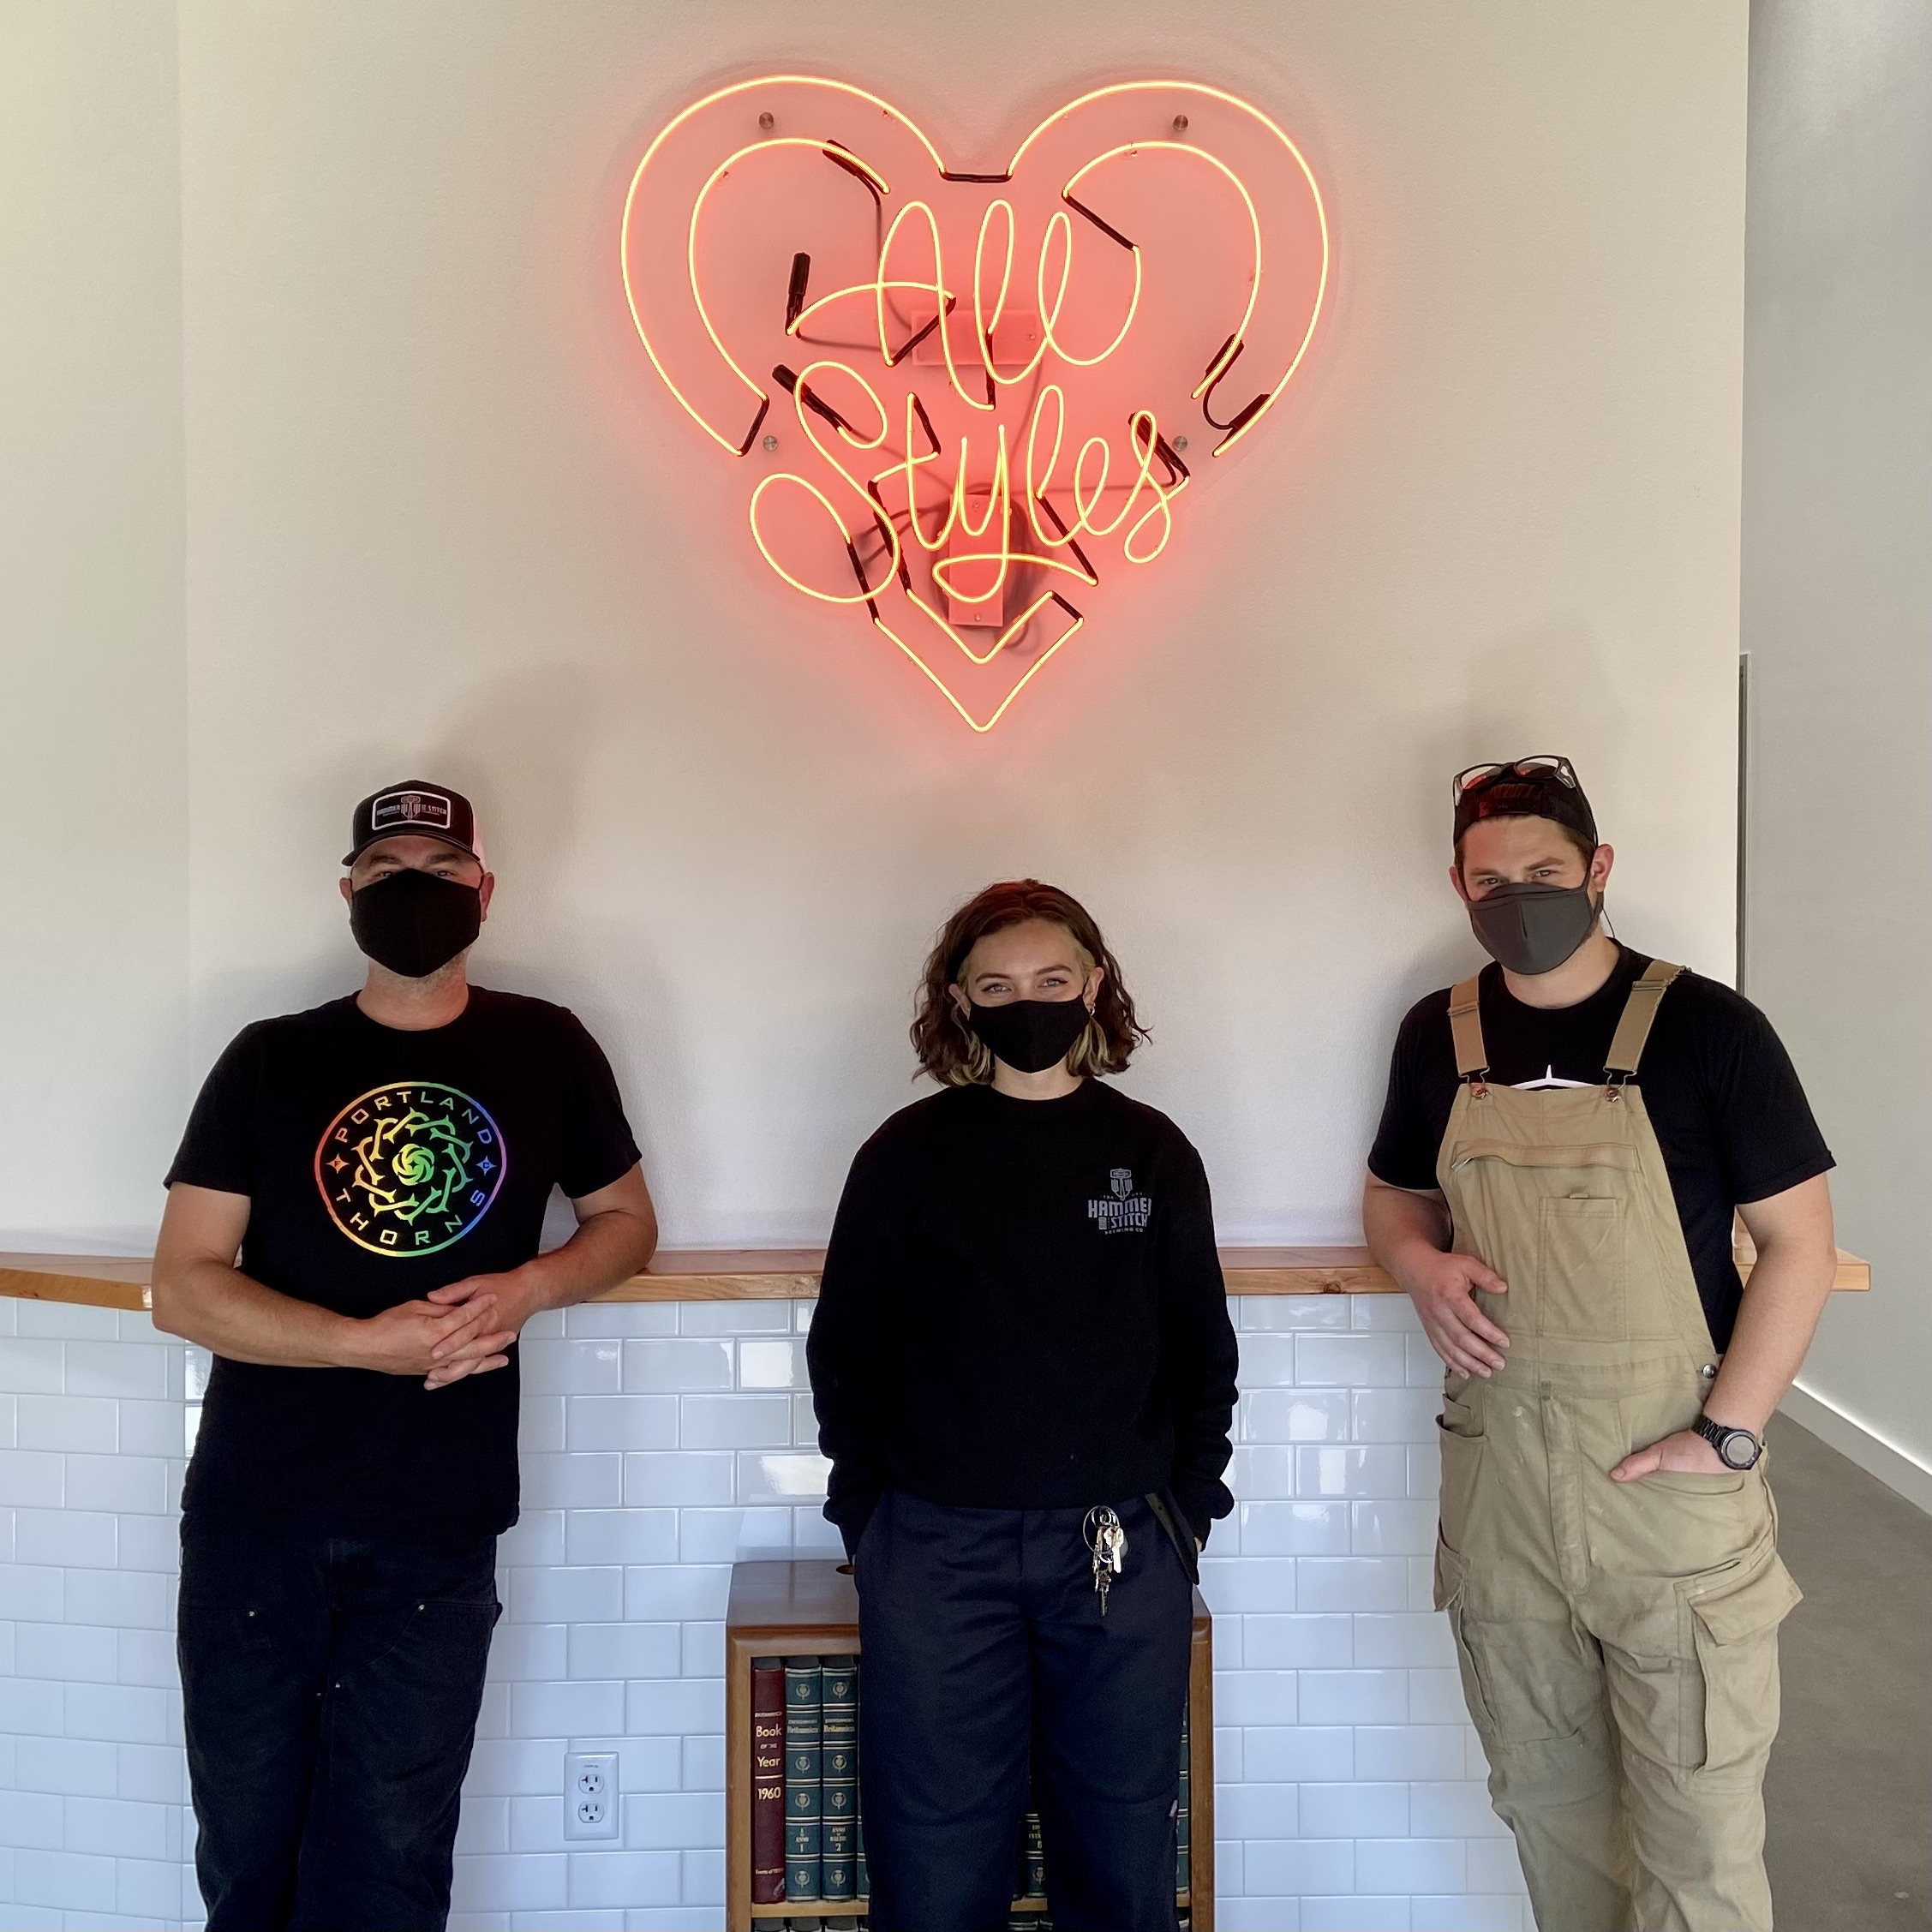 The crew at Hammer & Stitch Brewing - Ben Dobler, Madison Moody, and Cameron Murphy.